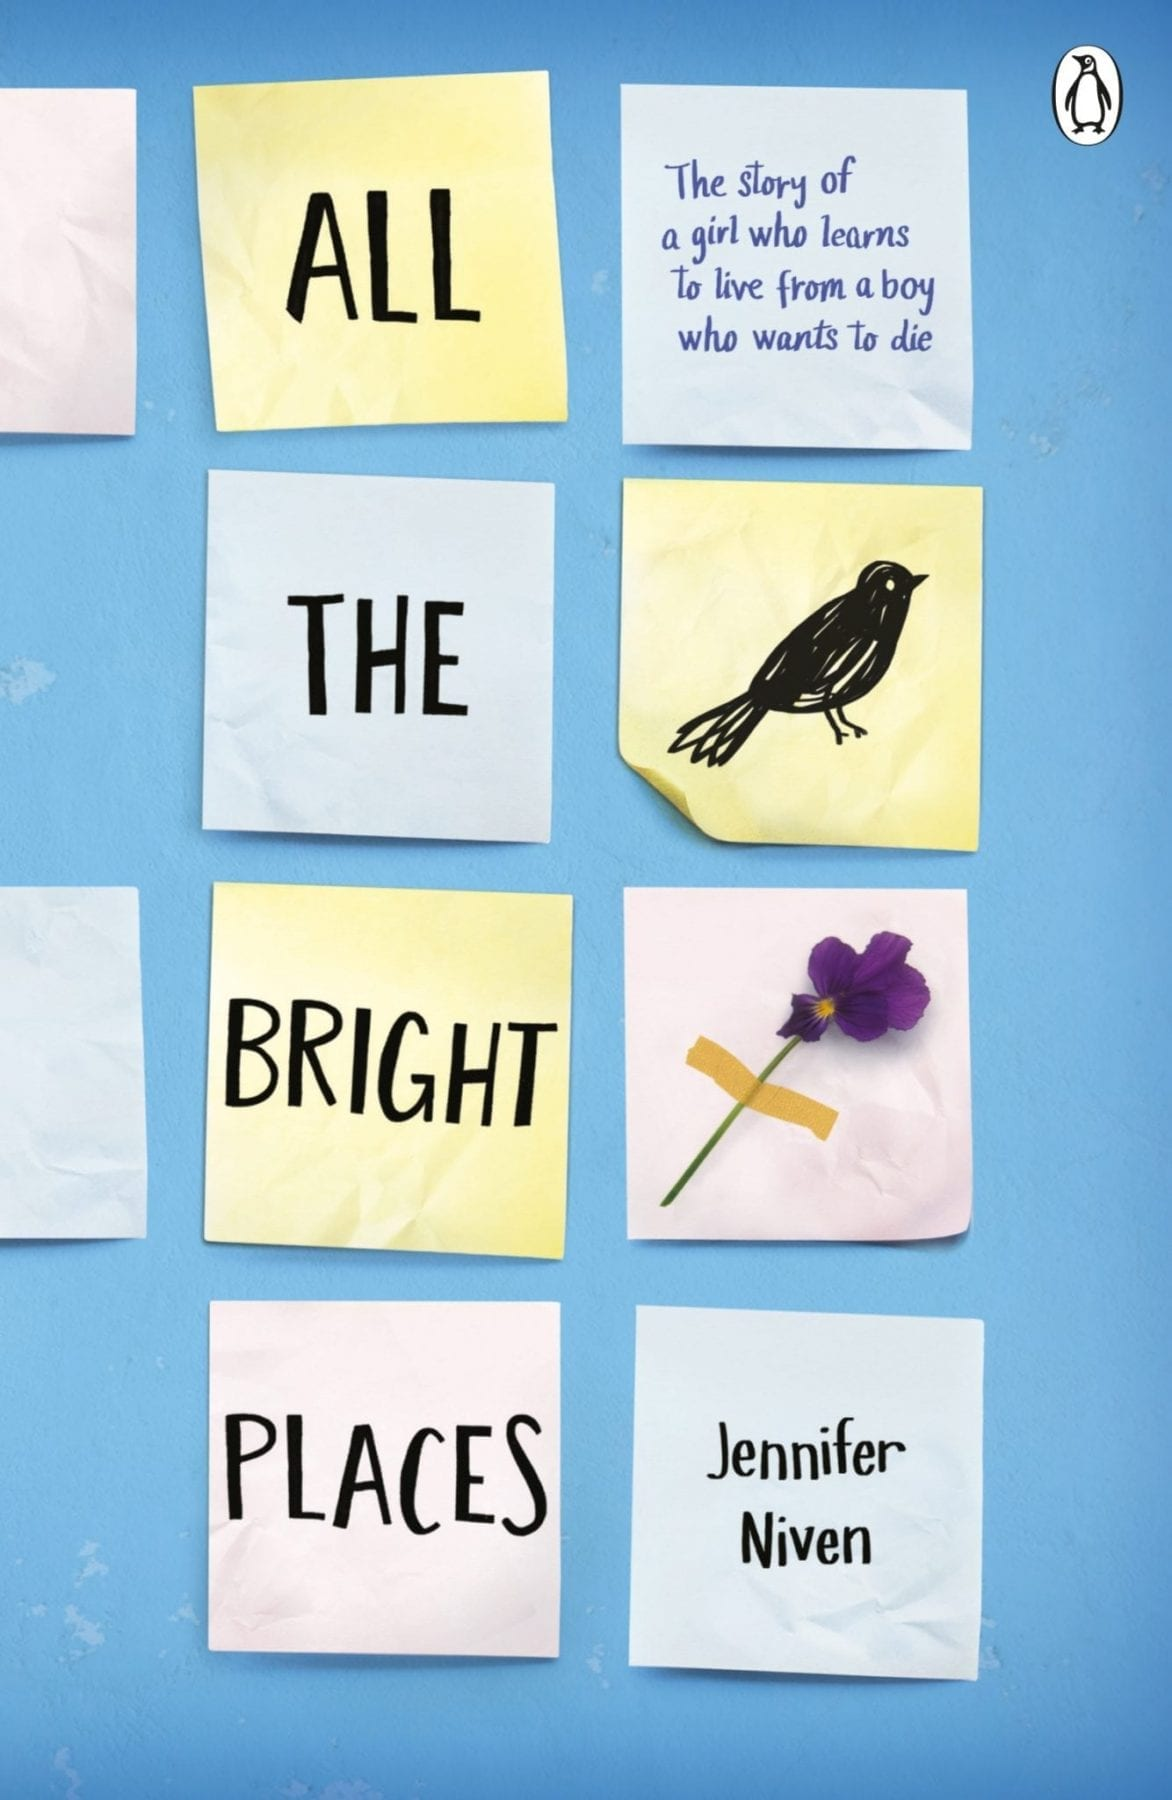 All the Right Places by Jennifer Niven